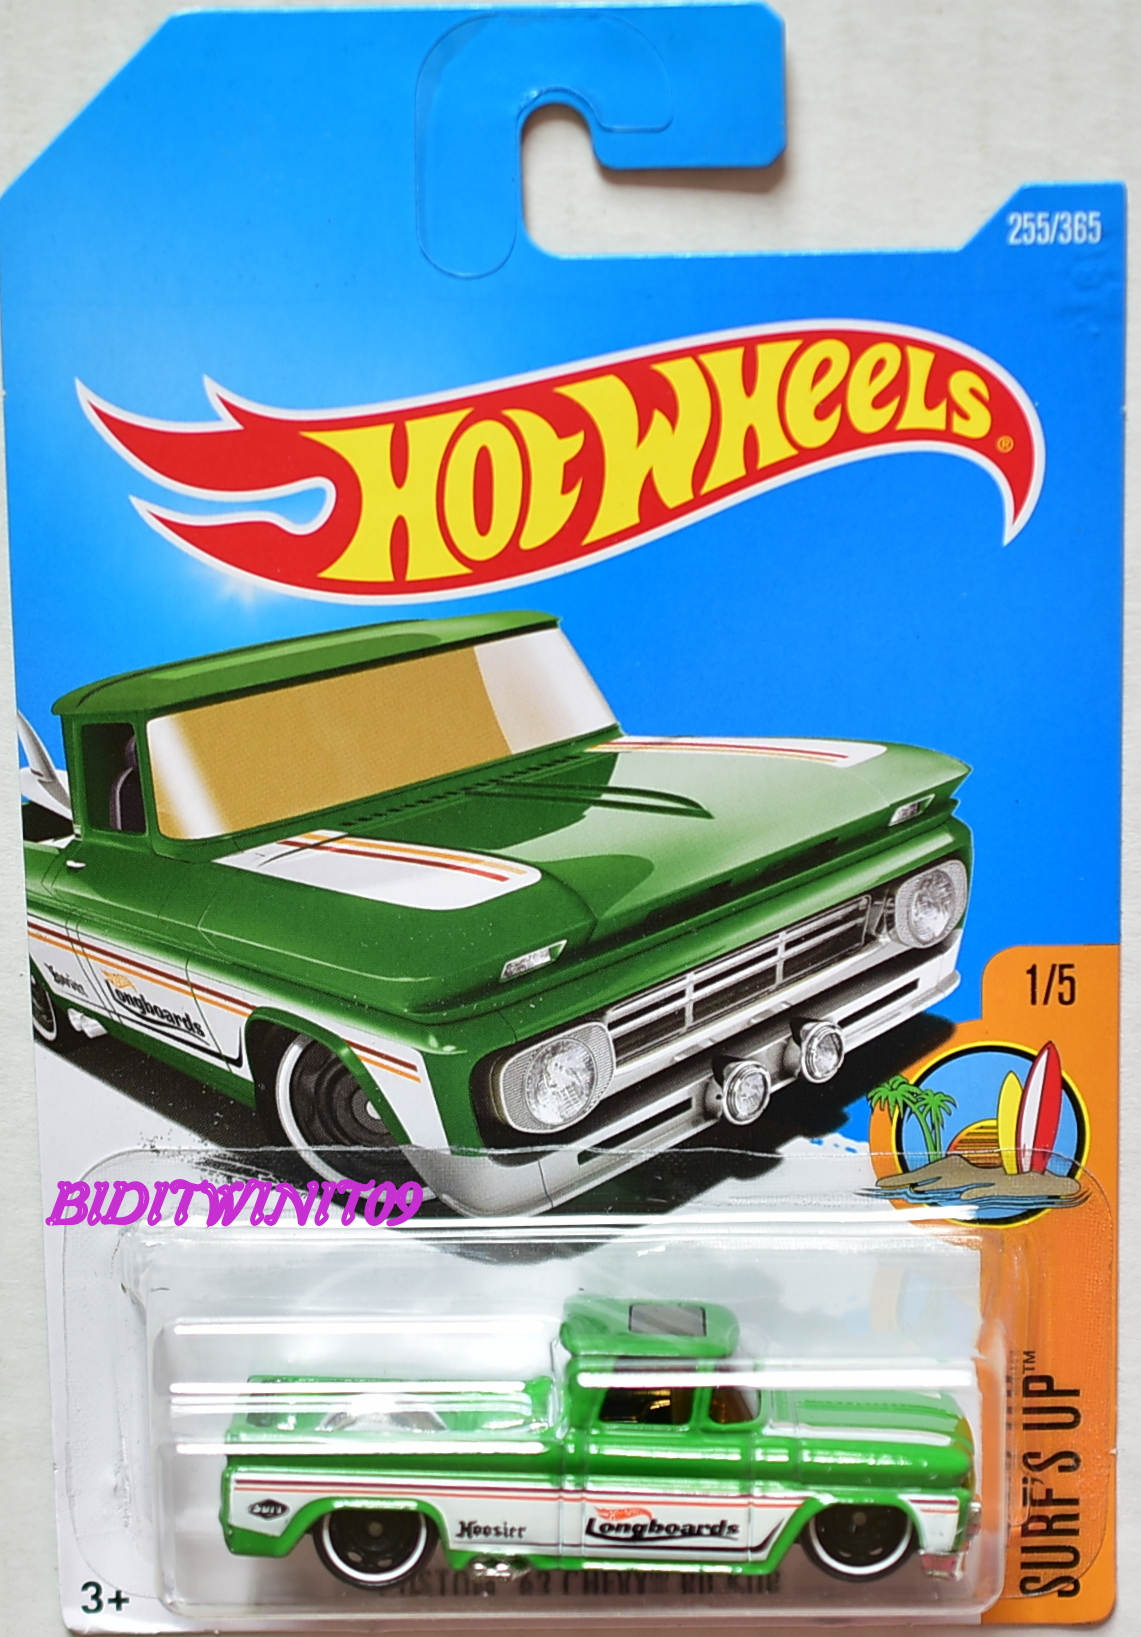 HOT WHEELS 2017 SURF'S UP CUSTOM '62 CHEVY PICKUP #1/5